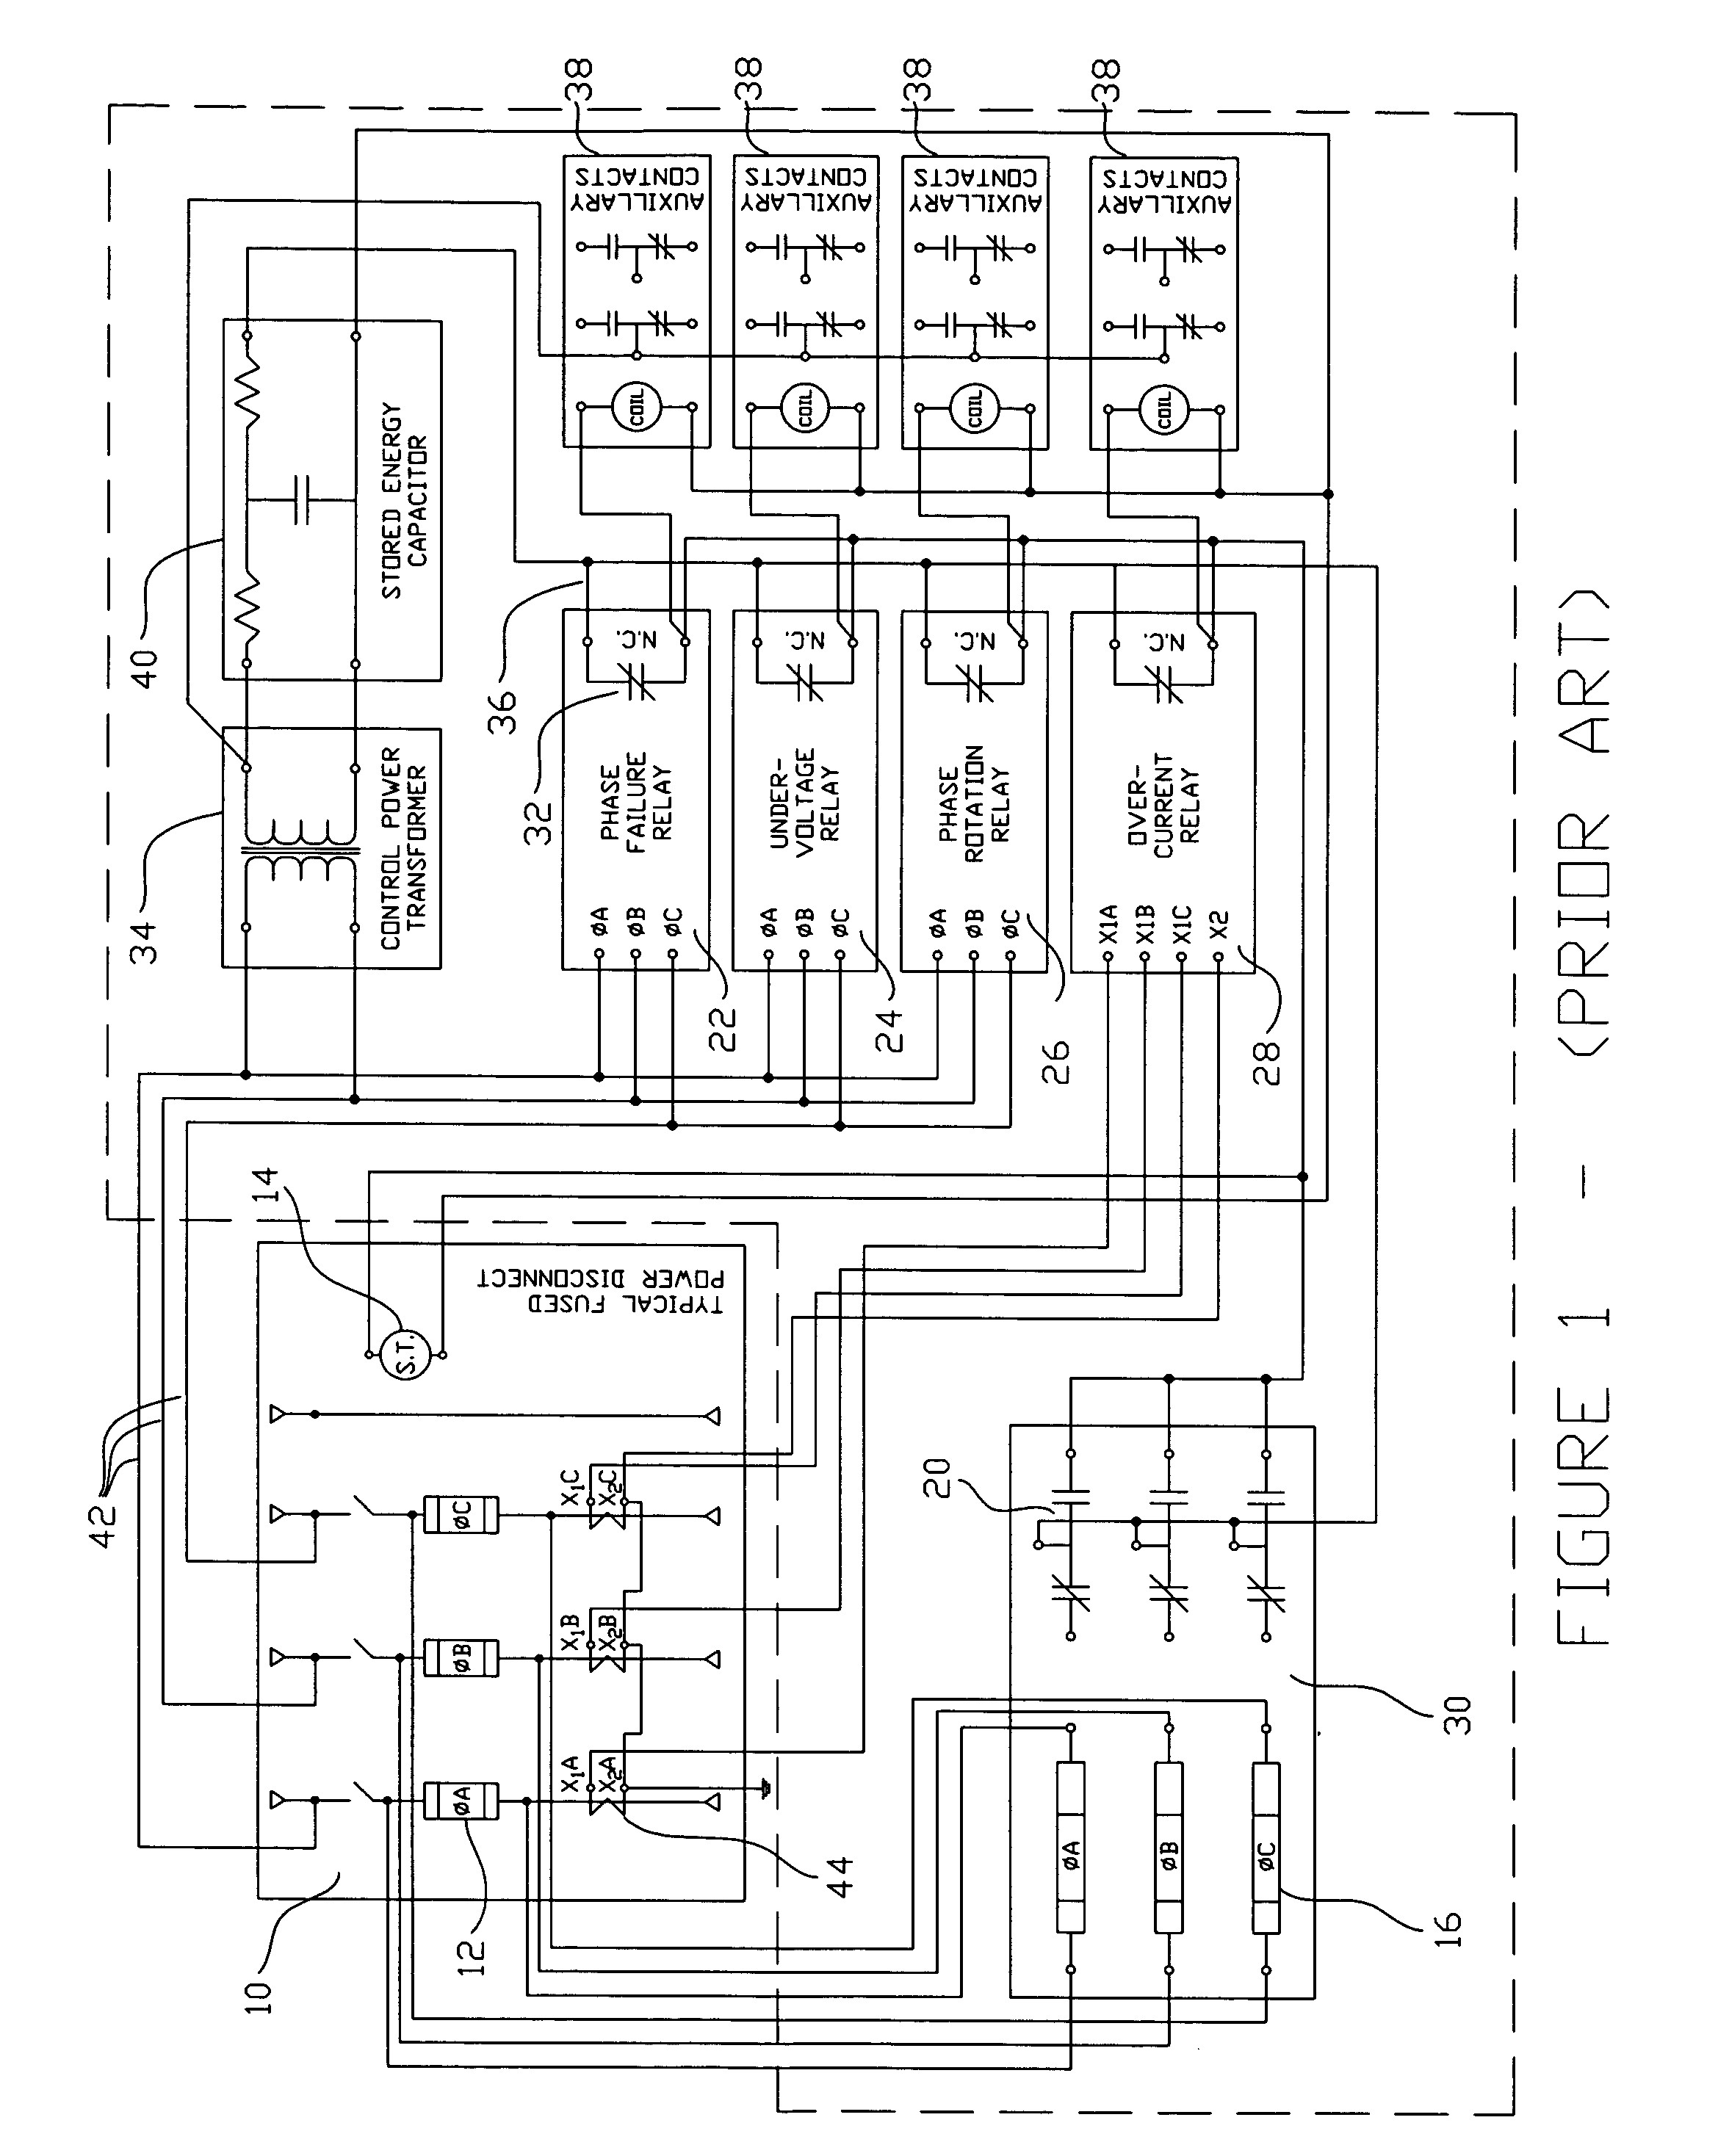 Siemens Shunt Trip Breaker Wiring Diagram My Wiring Diagram